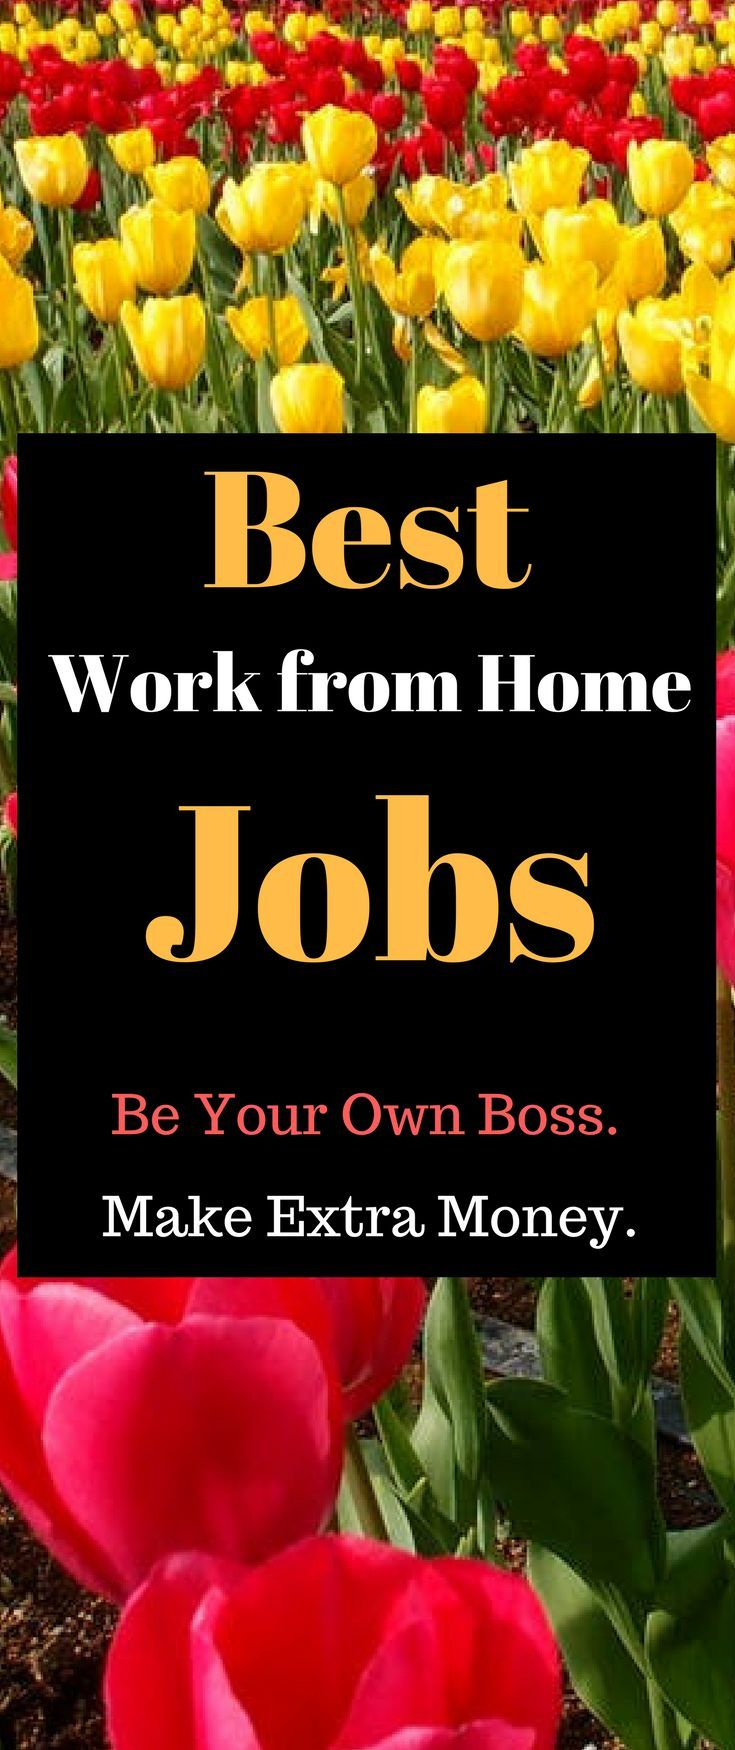 Best Work from Home Jobs – Get Paid to Test Search Engines